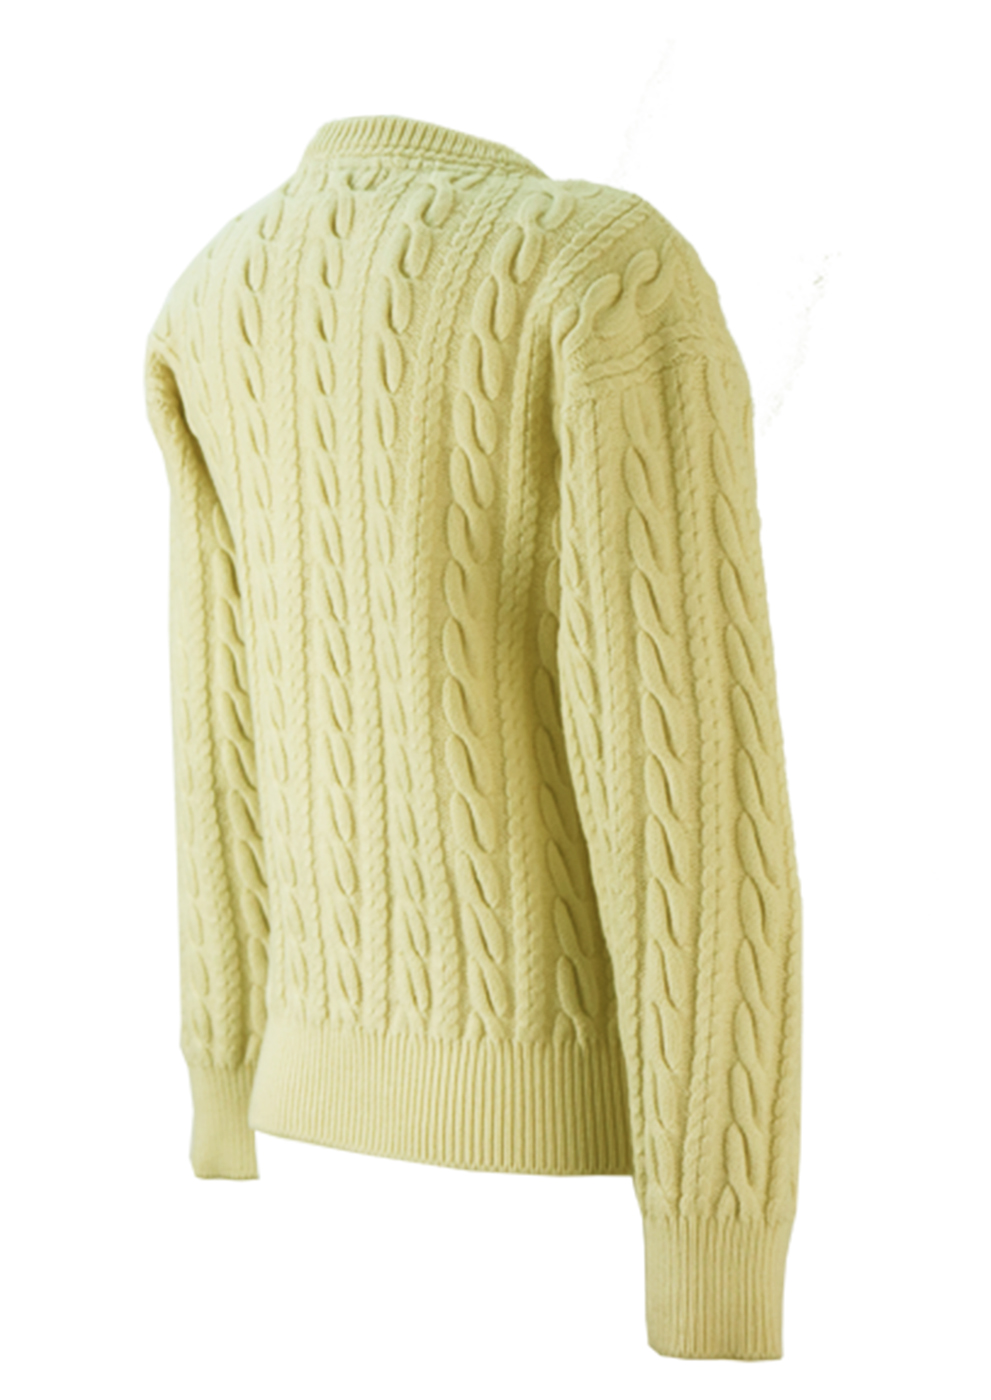 Paul Amp Shark Yachting Cable Knit Cream Jumper S M Reign Vintage